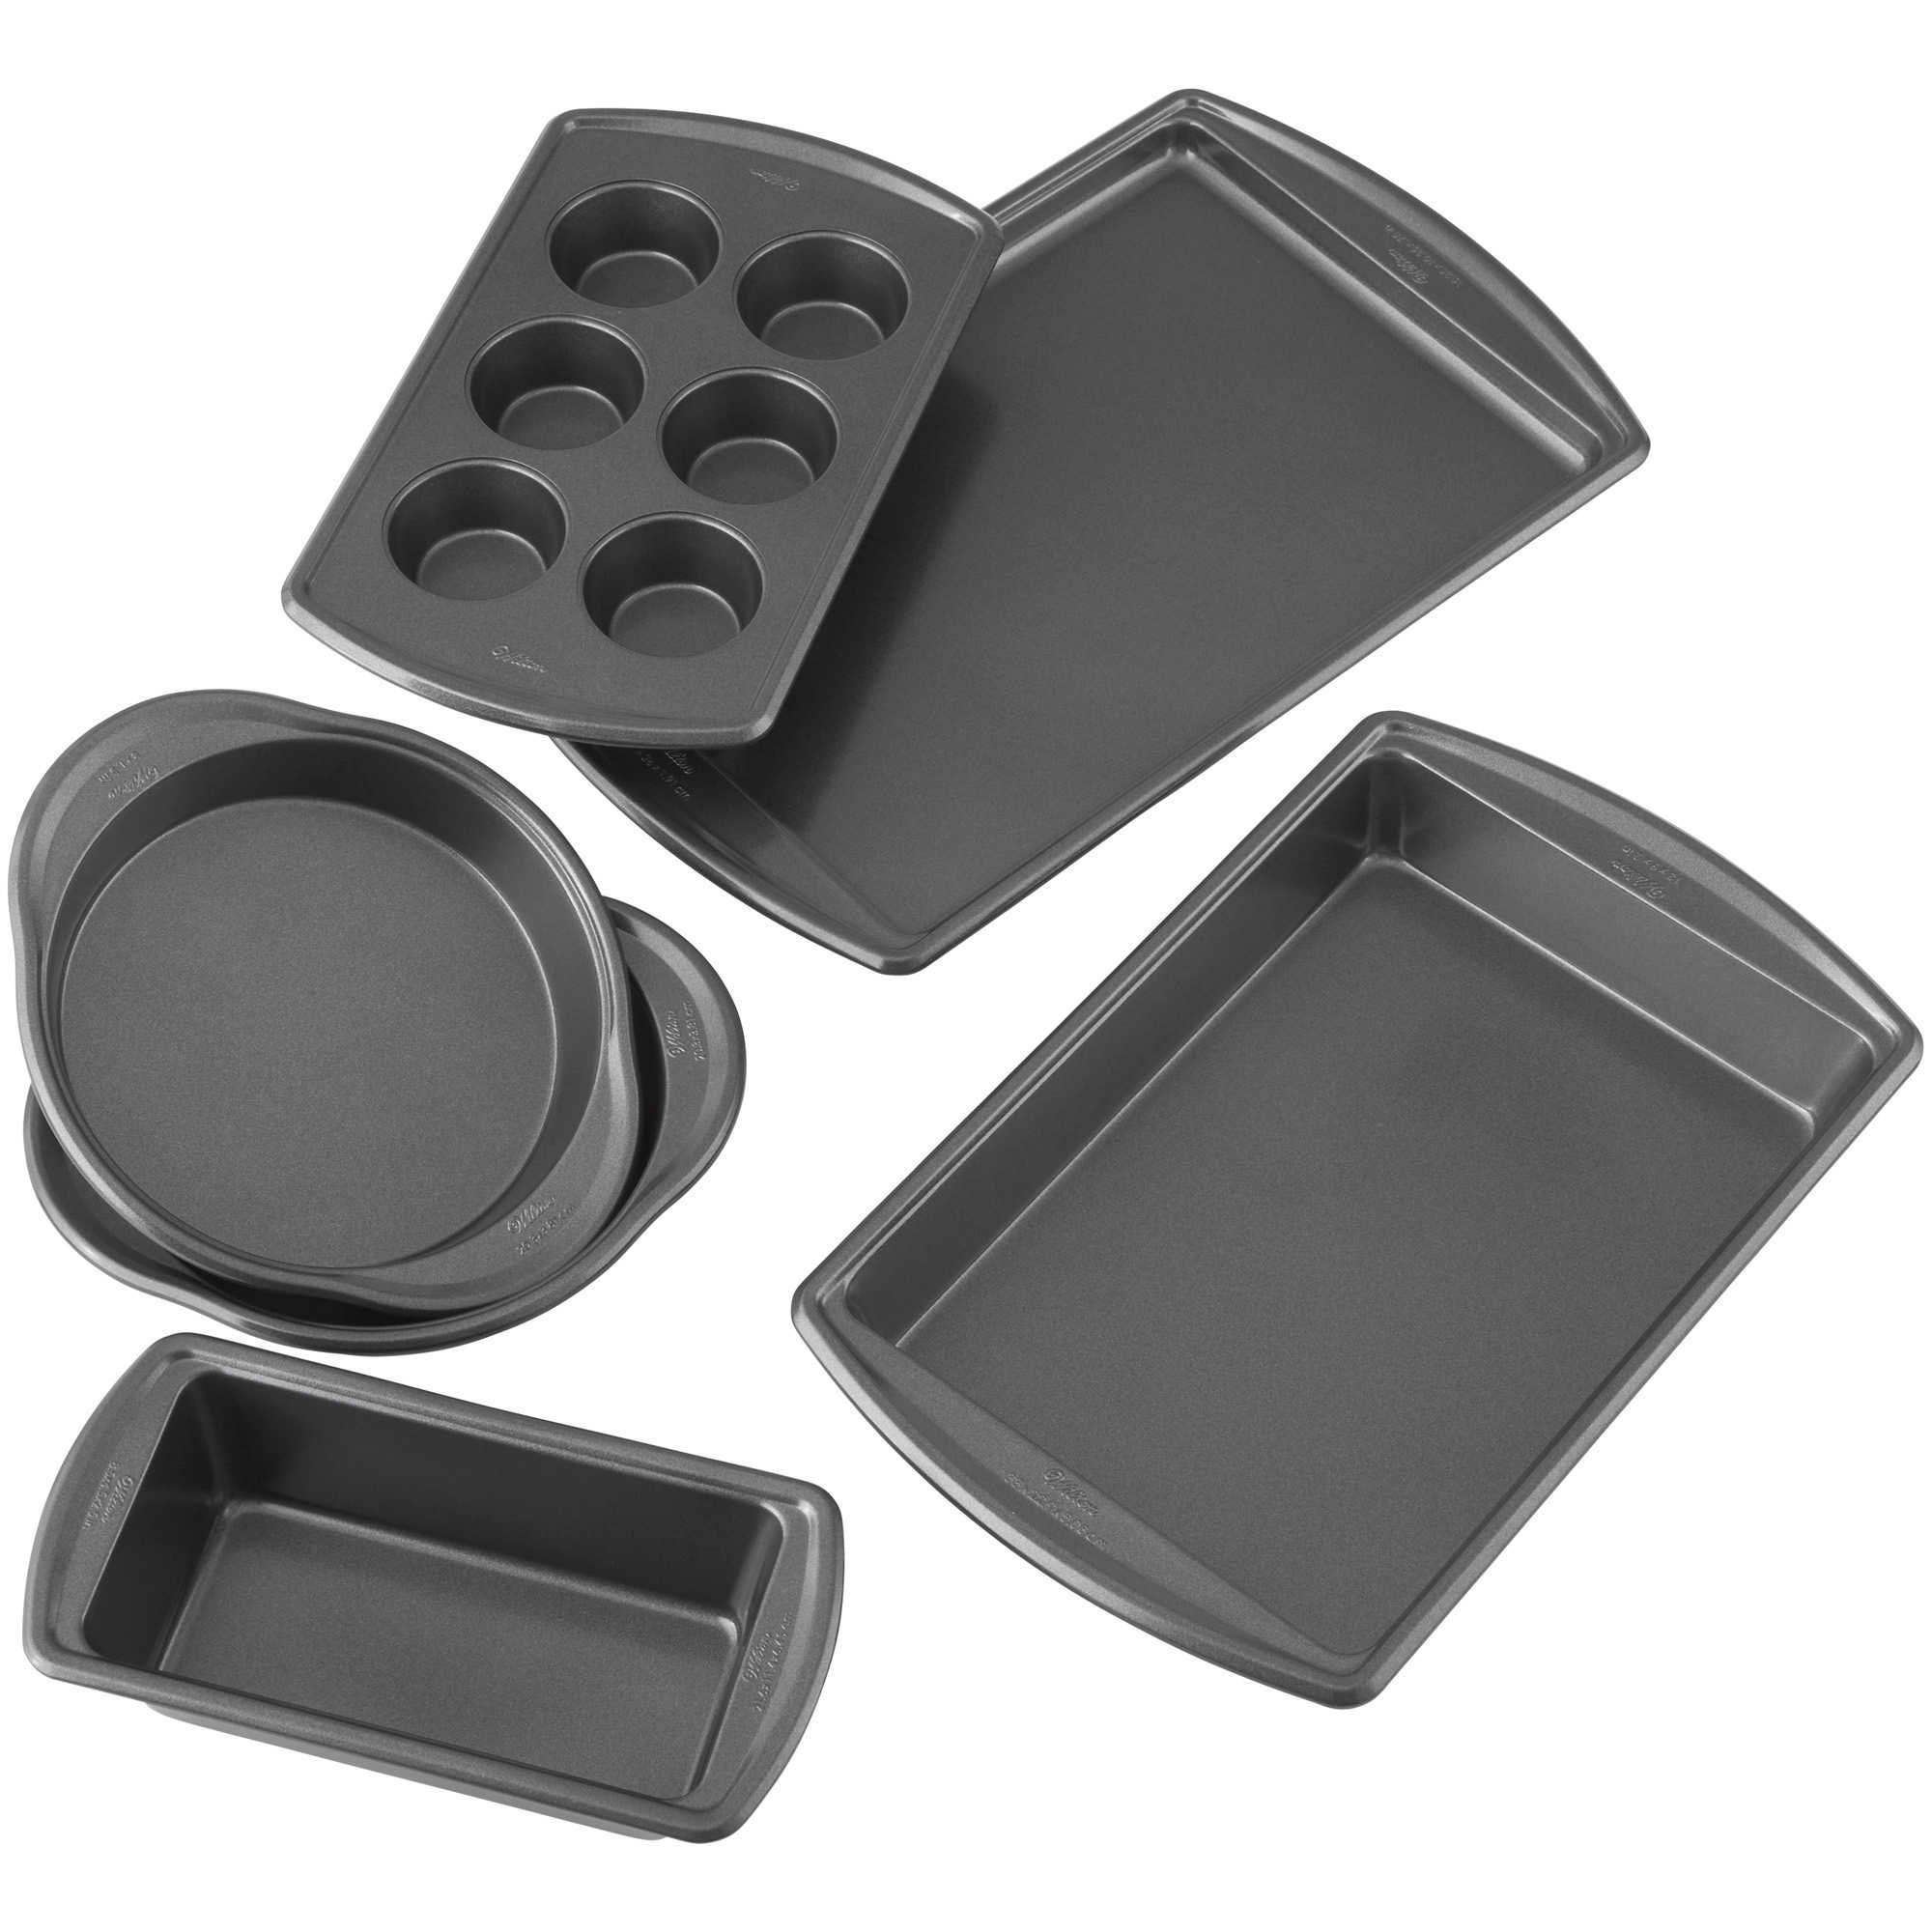 Wilton Advance Select Premium Nonstick 6-Piece Bakeware Set